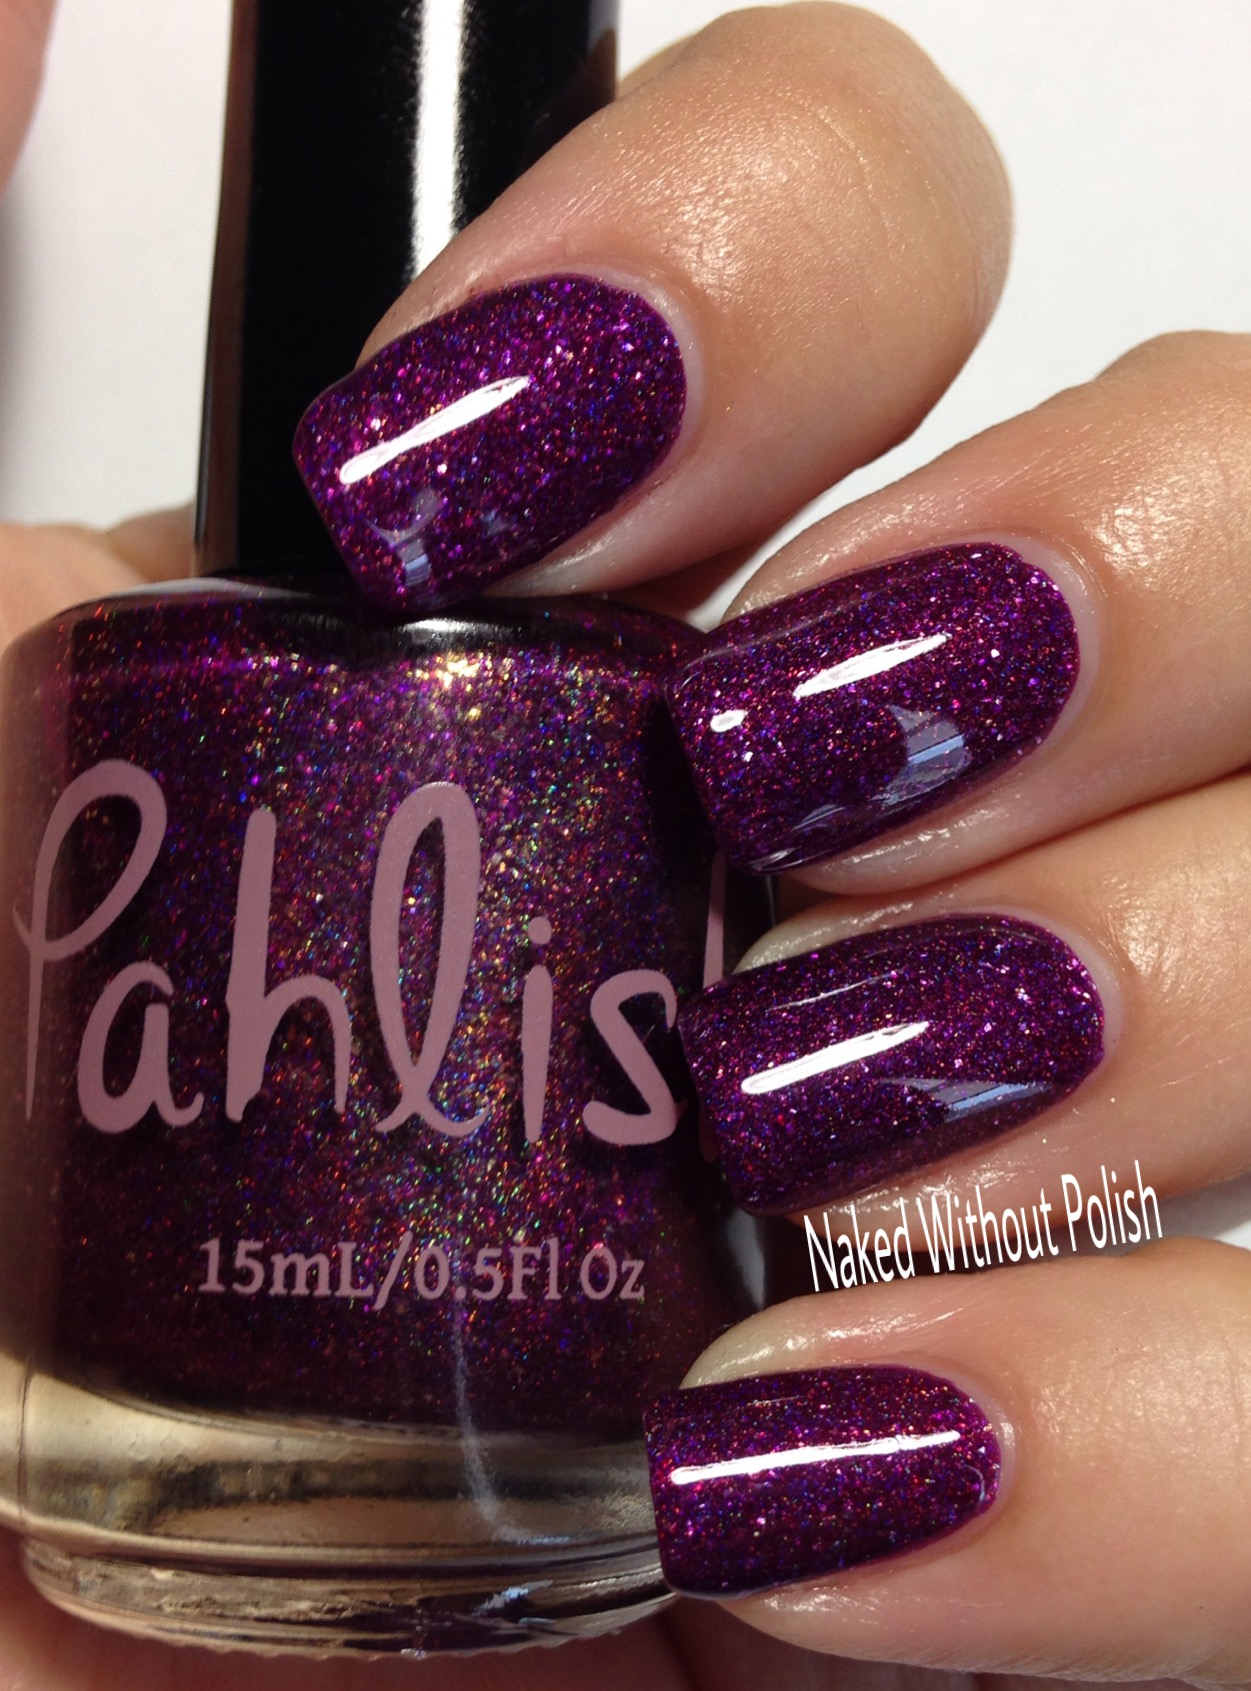 Polish-Pickup-Pahlish-Goddess-of-Desire-11